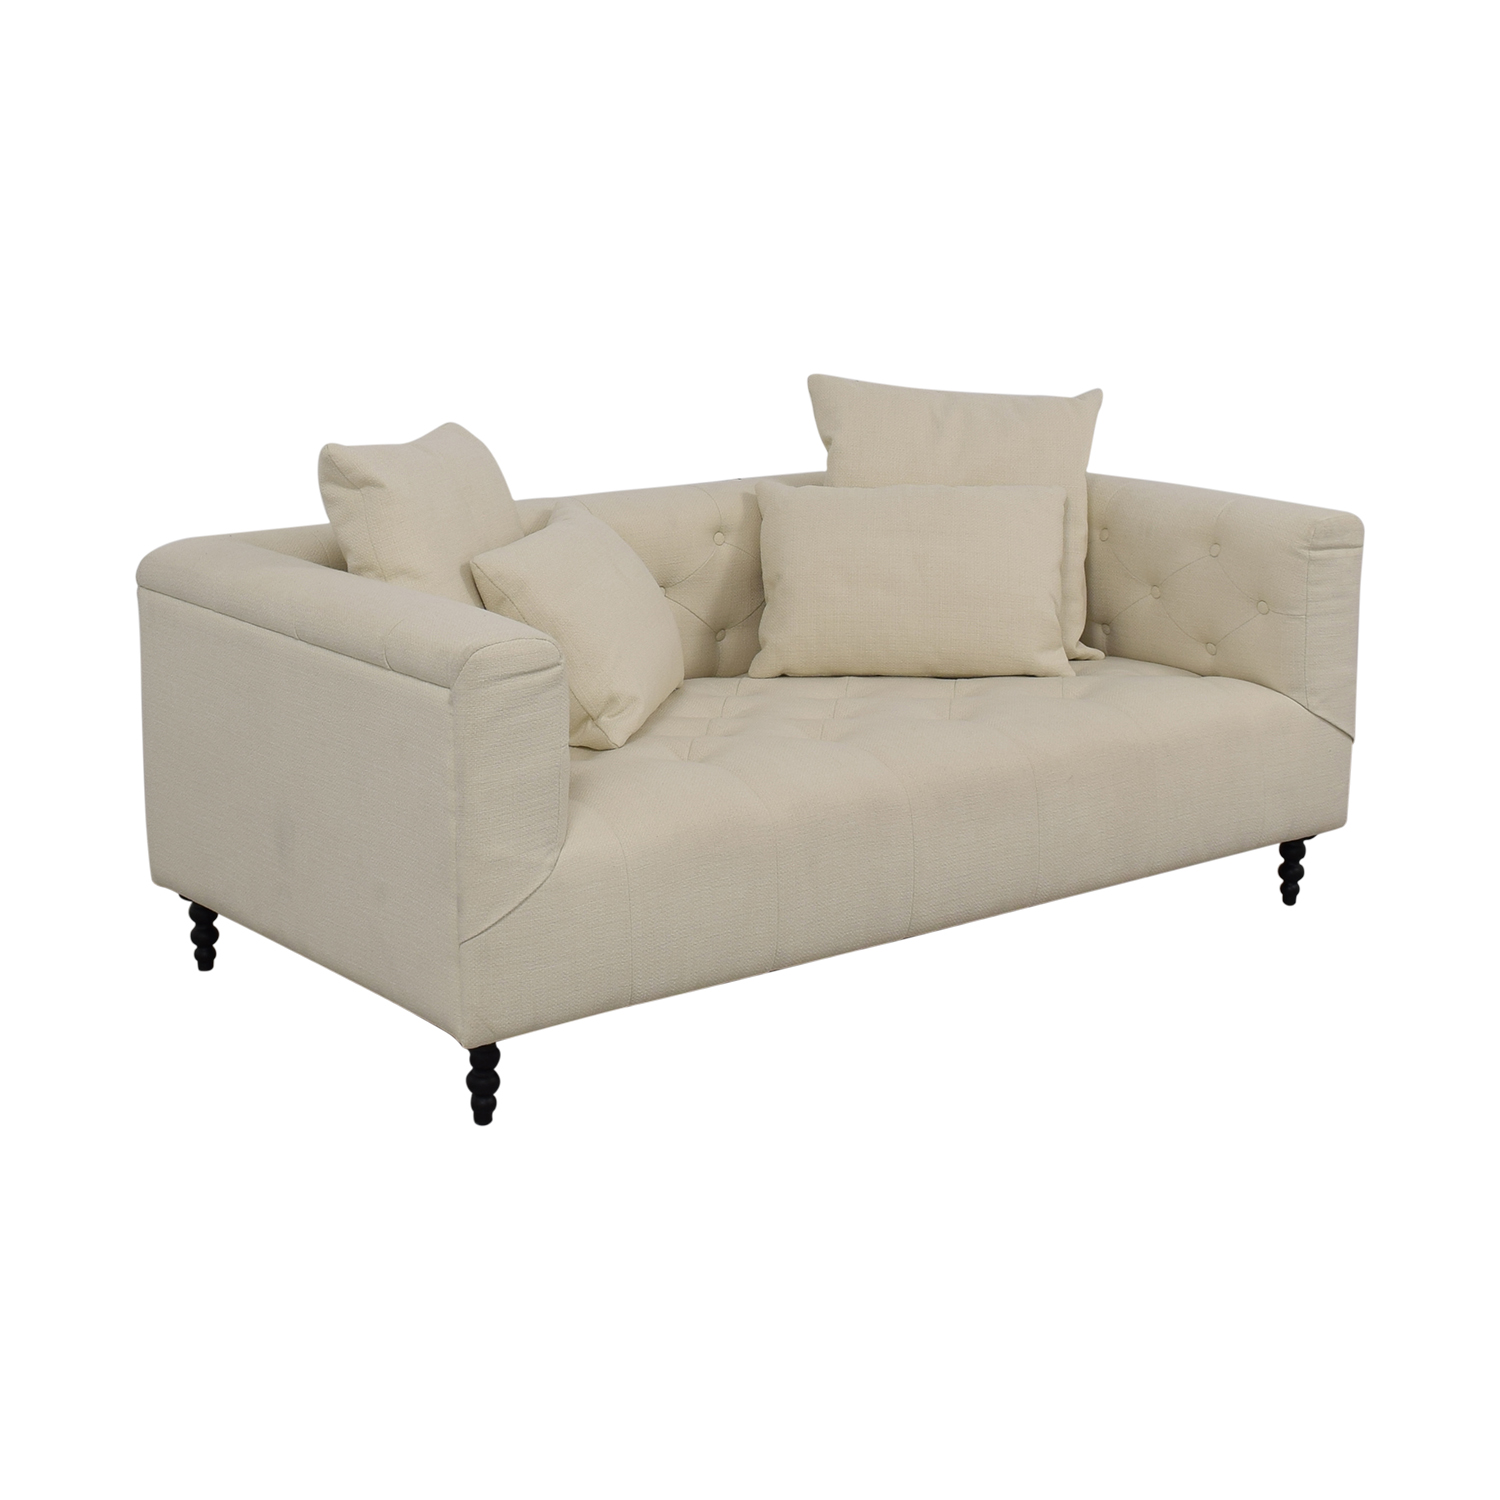 Interior Define Ms. Chesterfield Vanilla Tufted Single Cushion Sofa vanilla